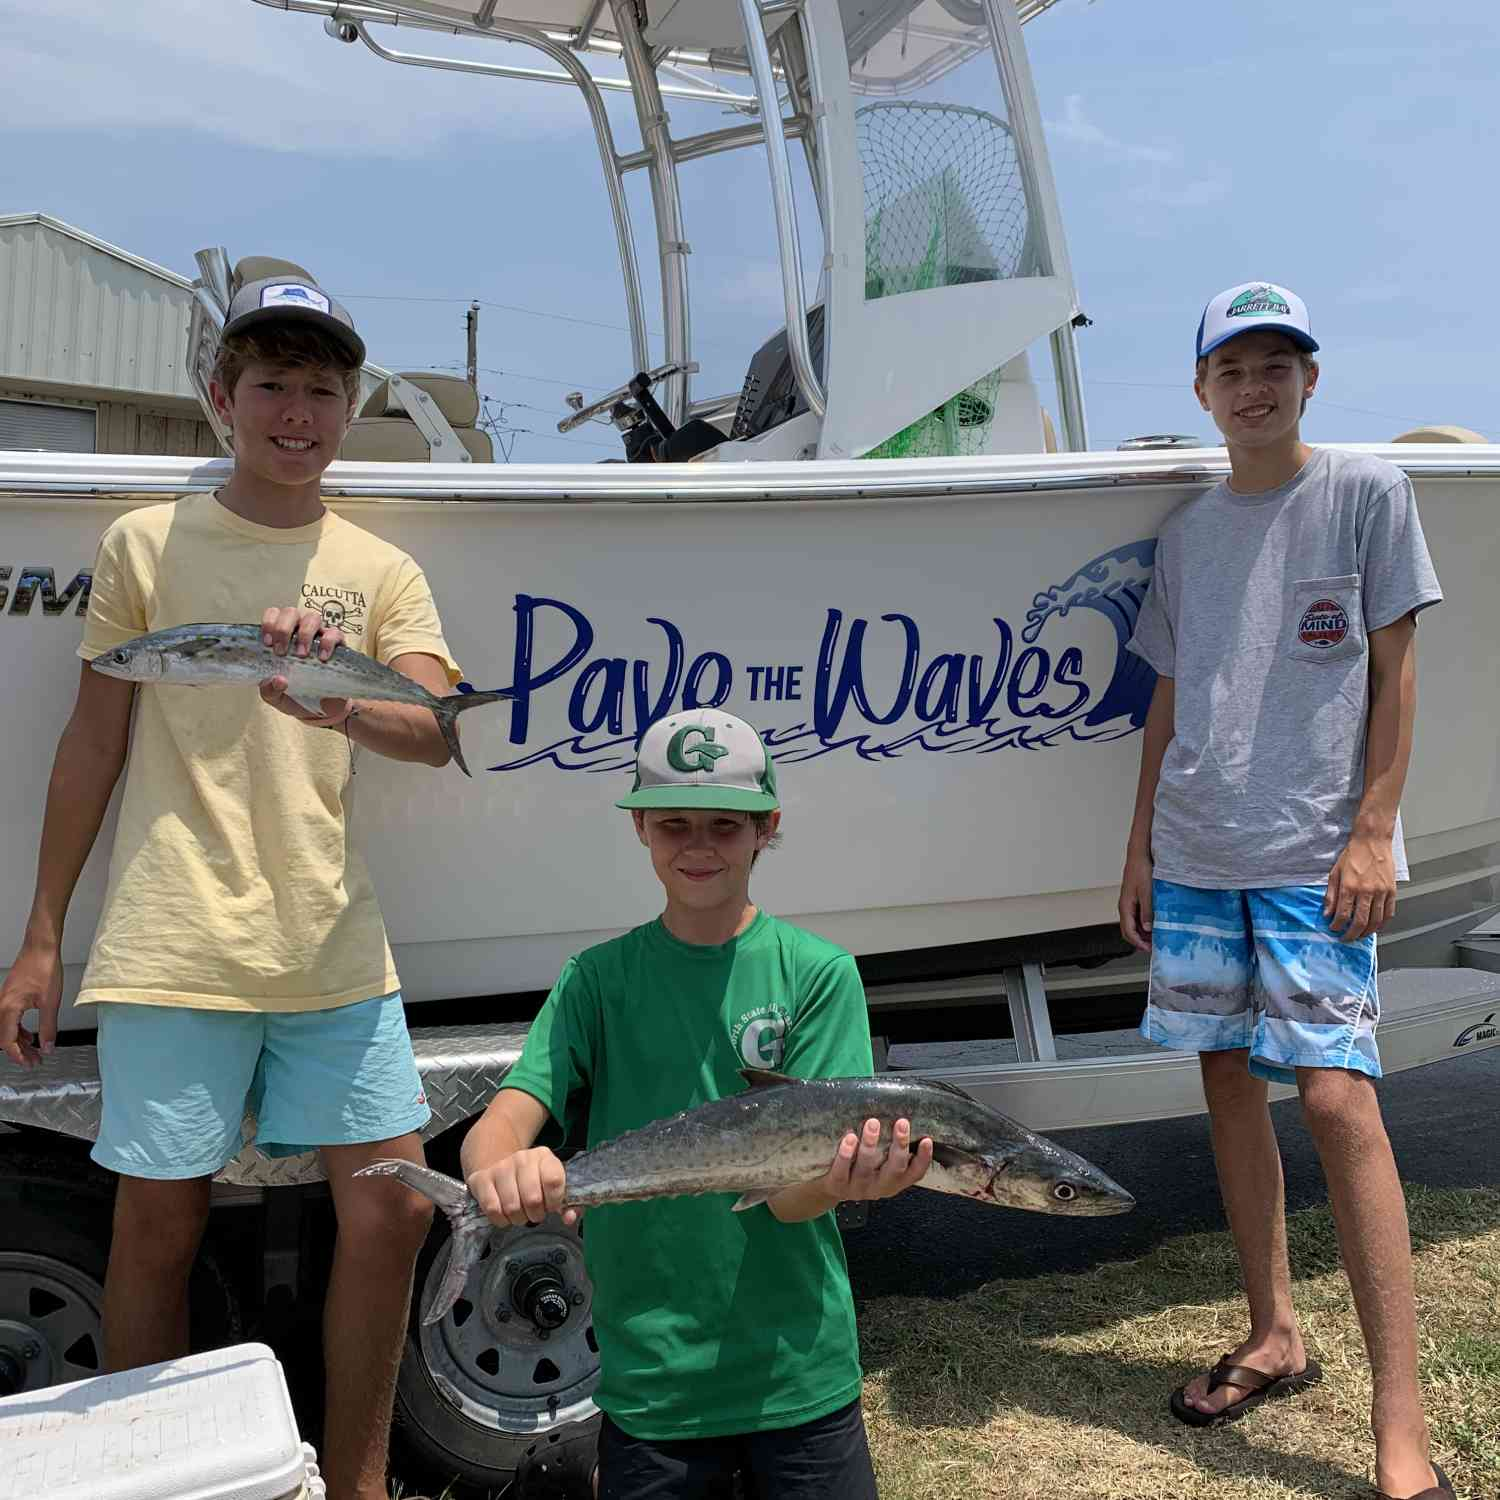 Title: A better day - On board their Sportsman Heritage 211 Center Console - Location: Indian Beach, NC. Participating in the Photo Contest #SportsmanJuly2020